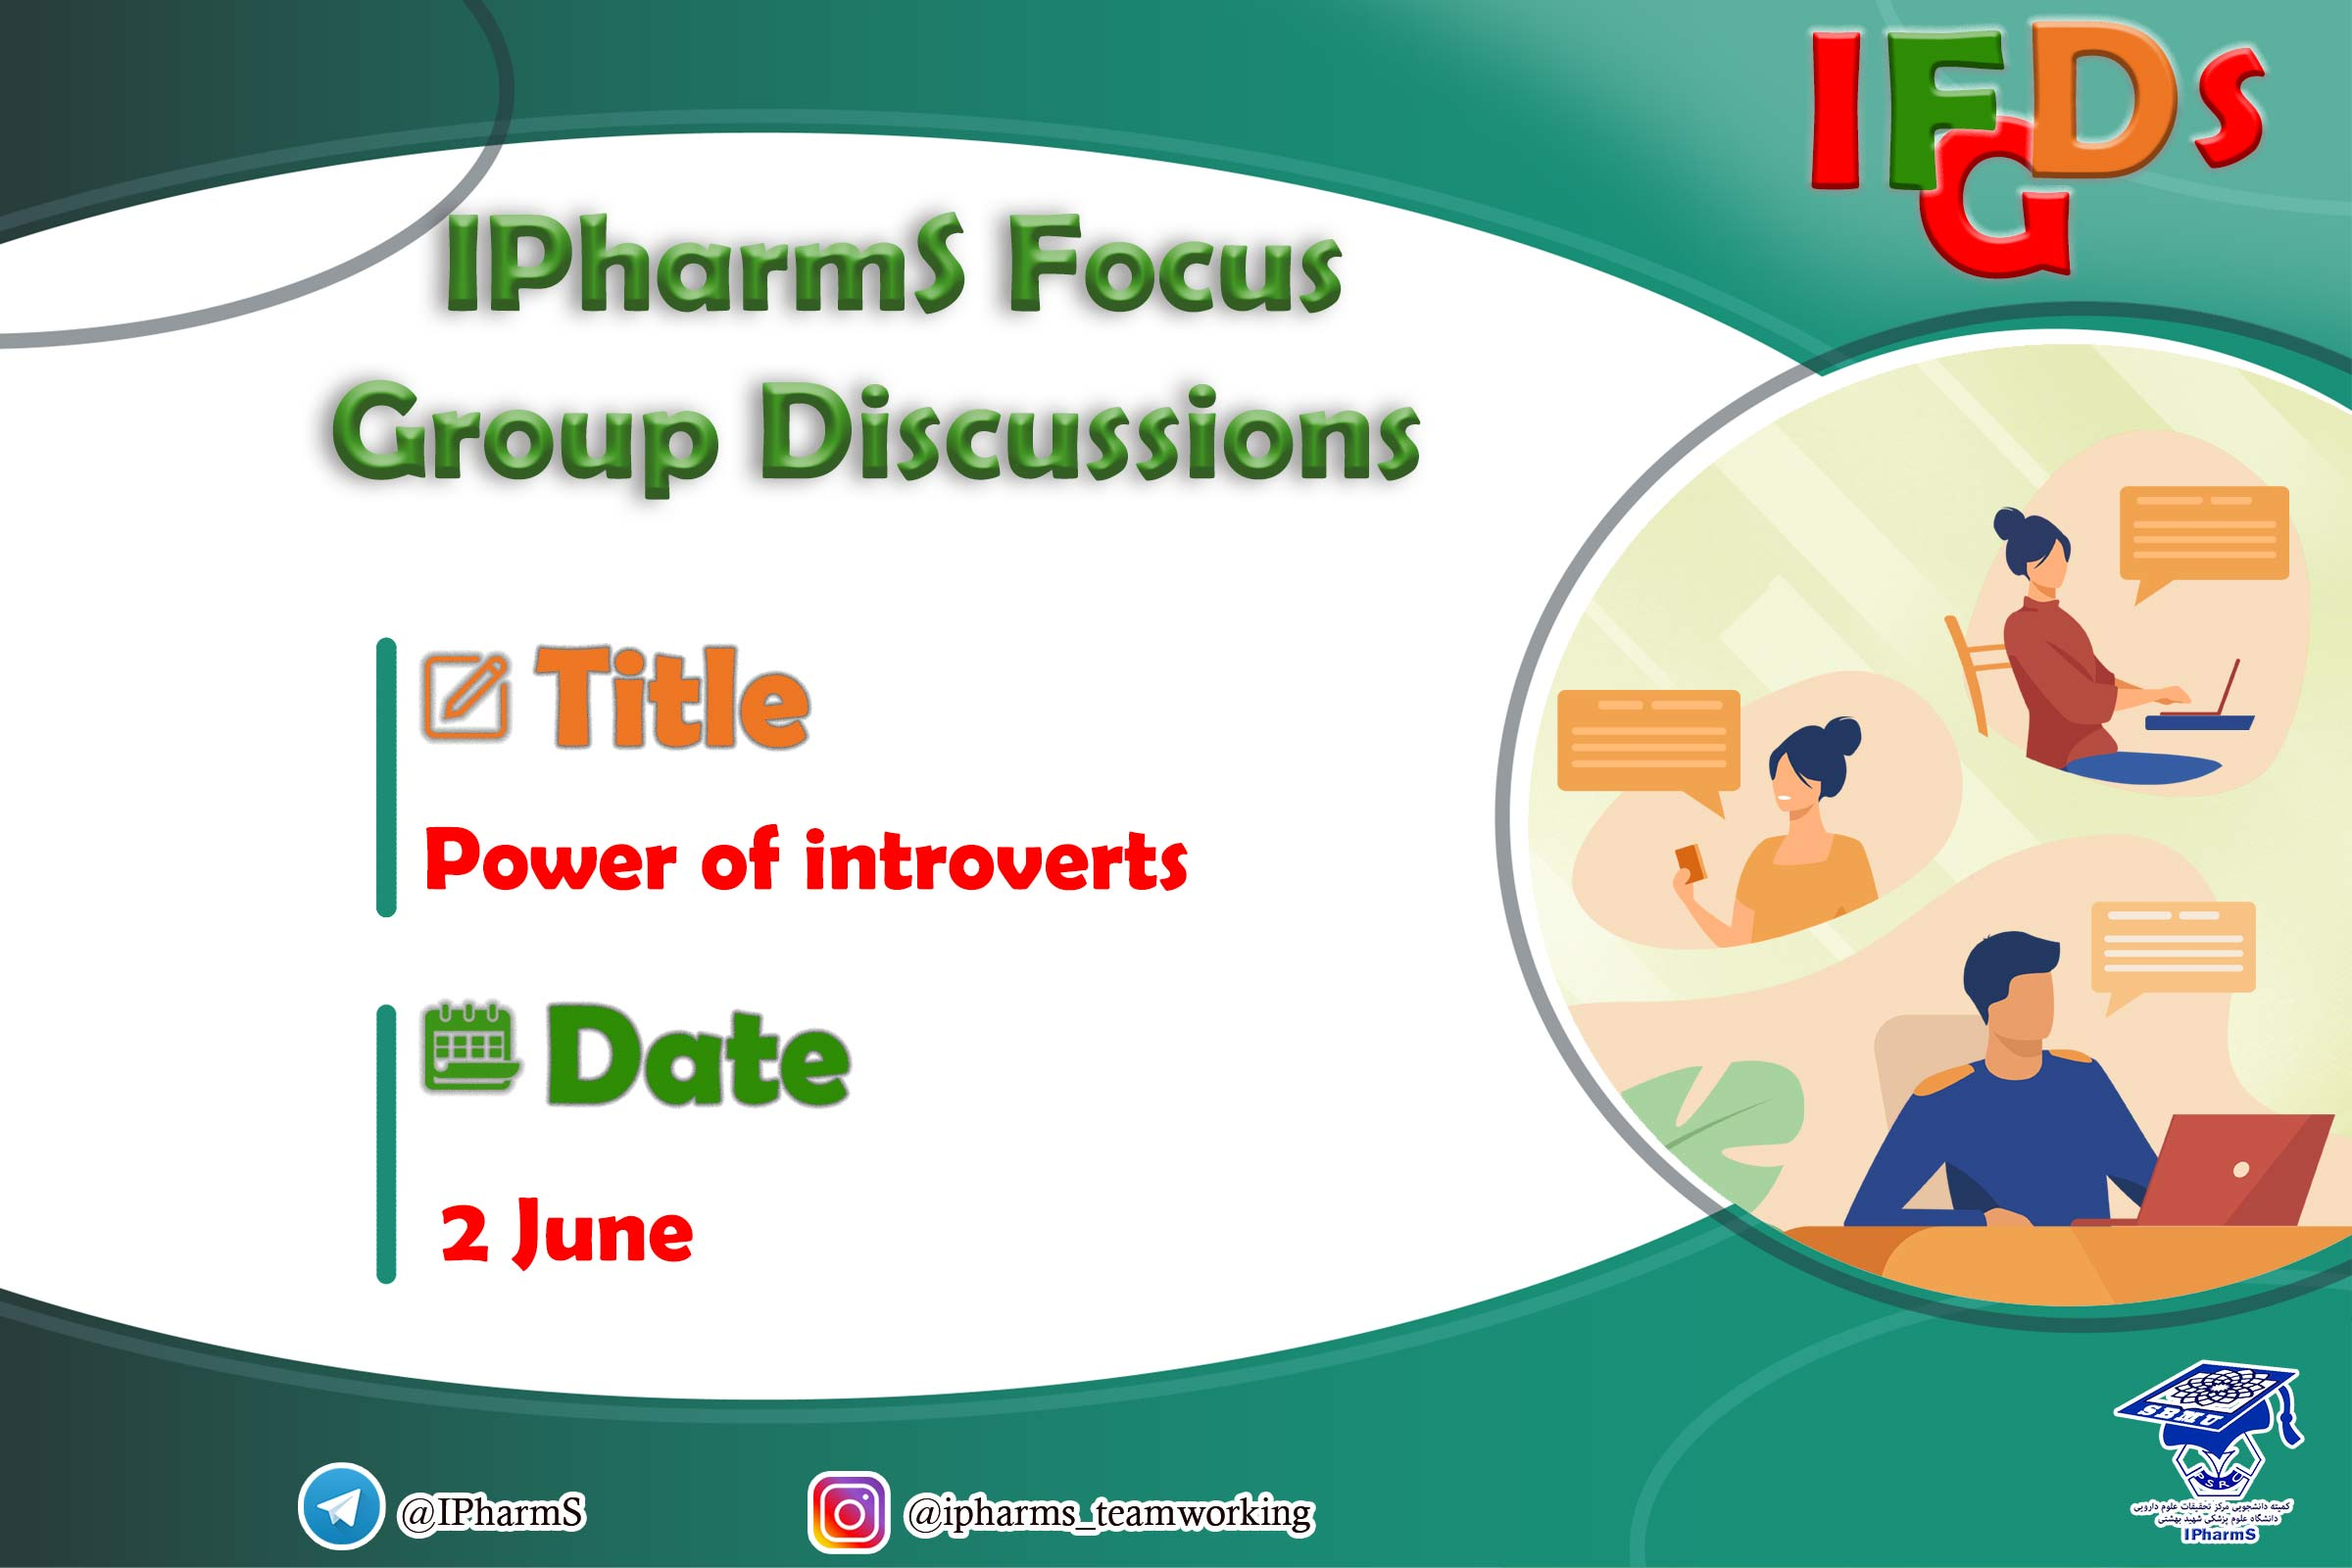 IFGDs Session 2: The power of introverts